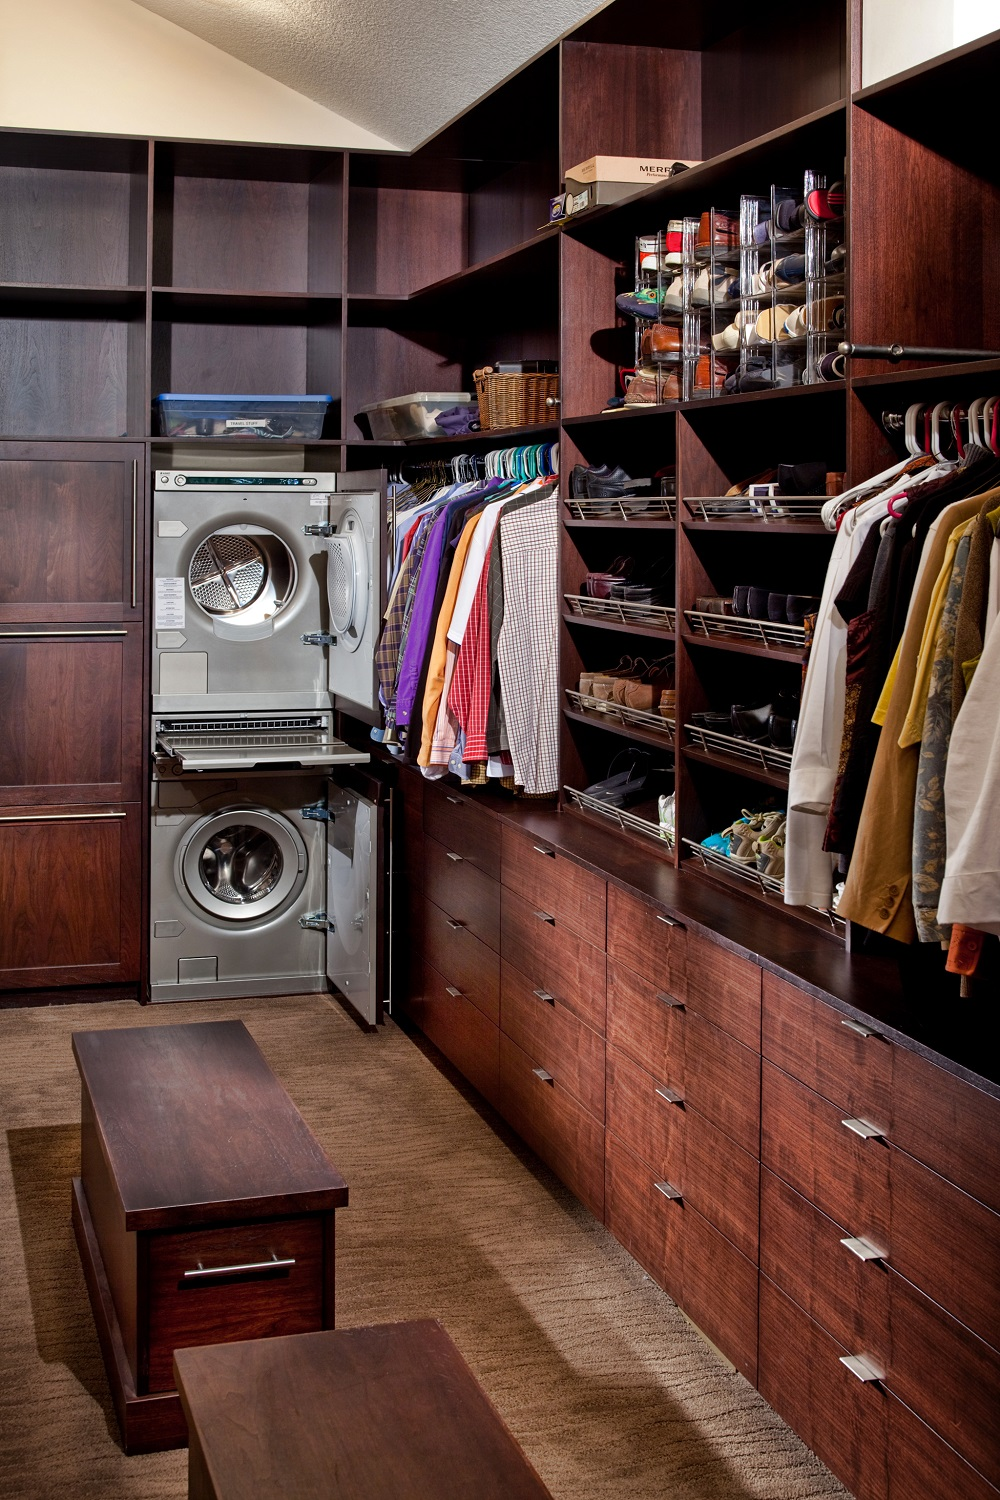 wc12 Cool walk-in closet ideas that you should have in your home